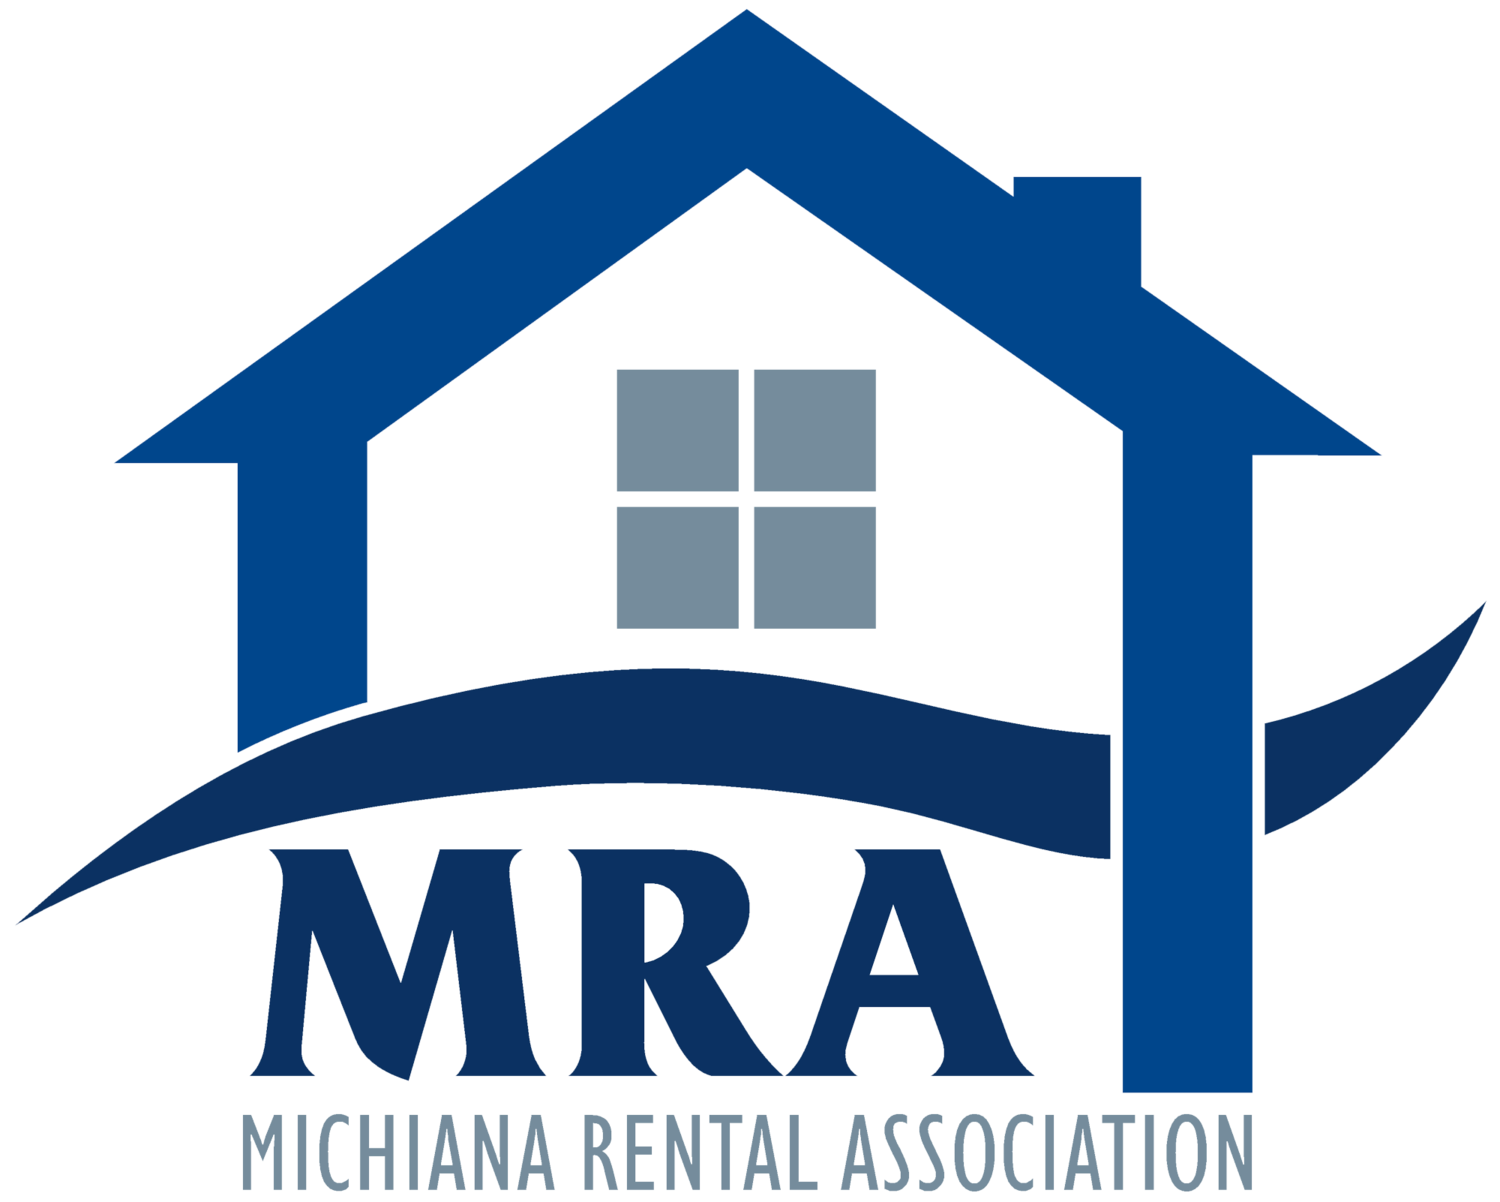 Michiana Rental Association